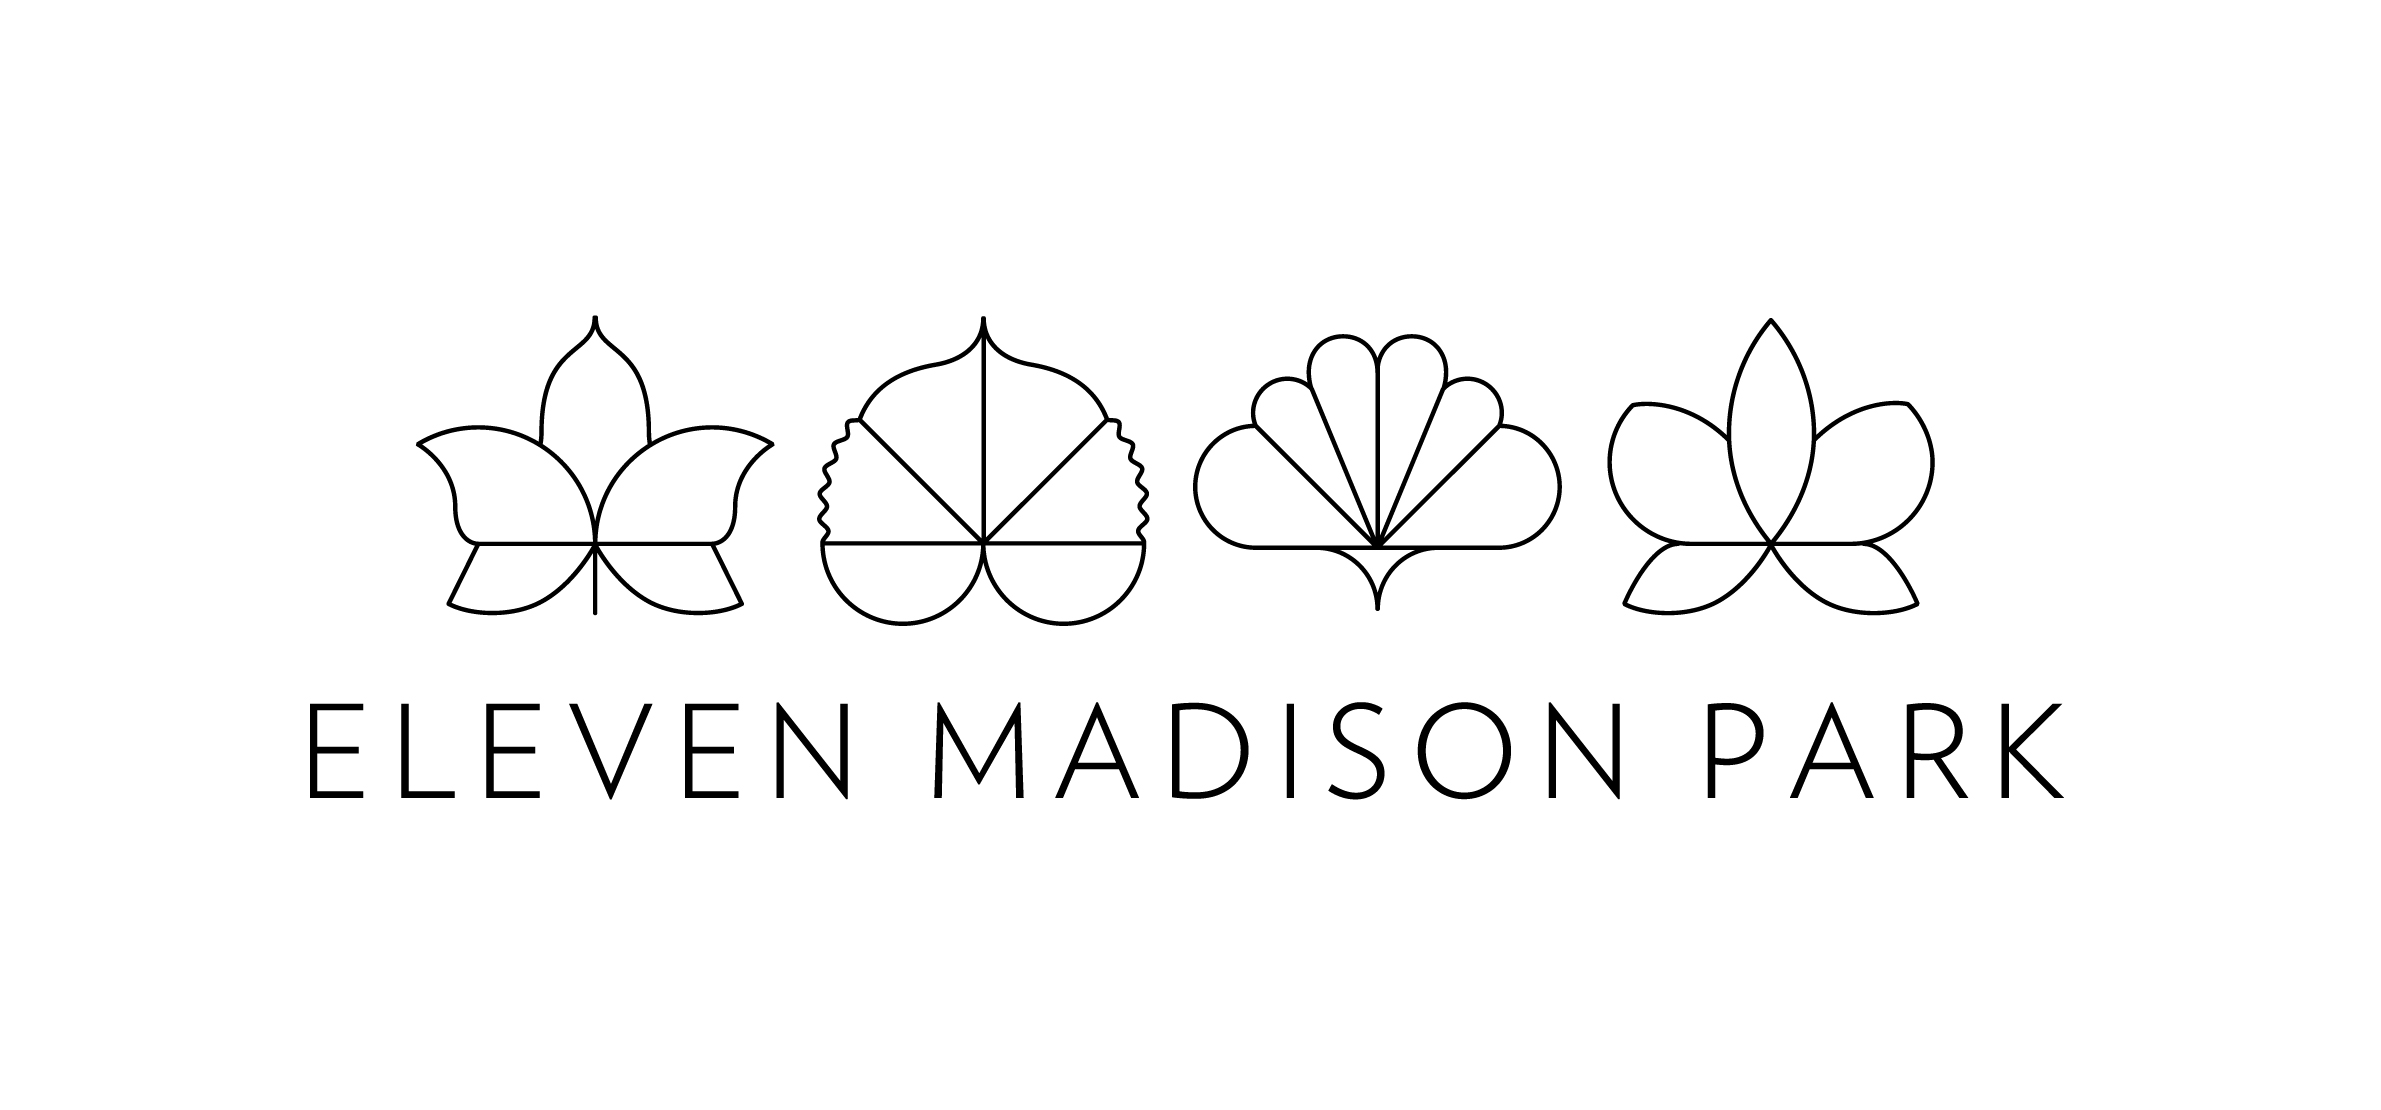 ElevenMadisonPark-Leaves_Wordmark.jpg